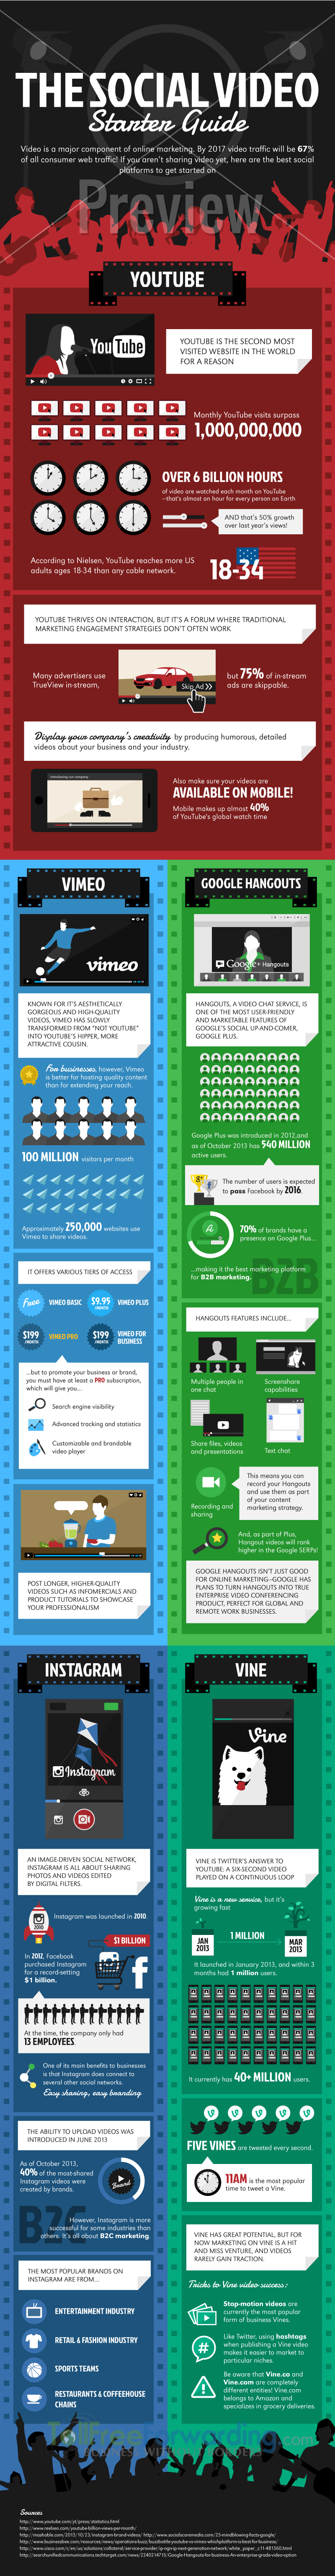 The social Media Video Infographic